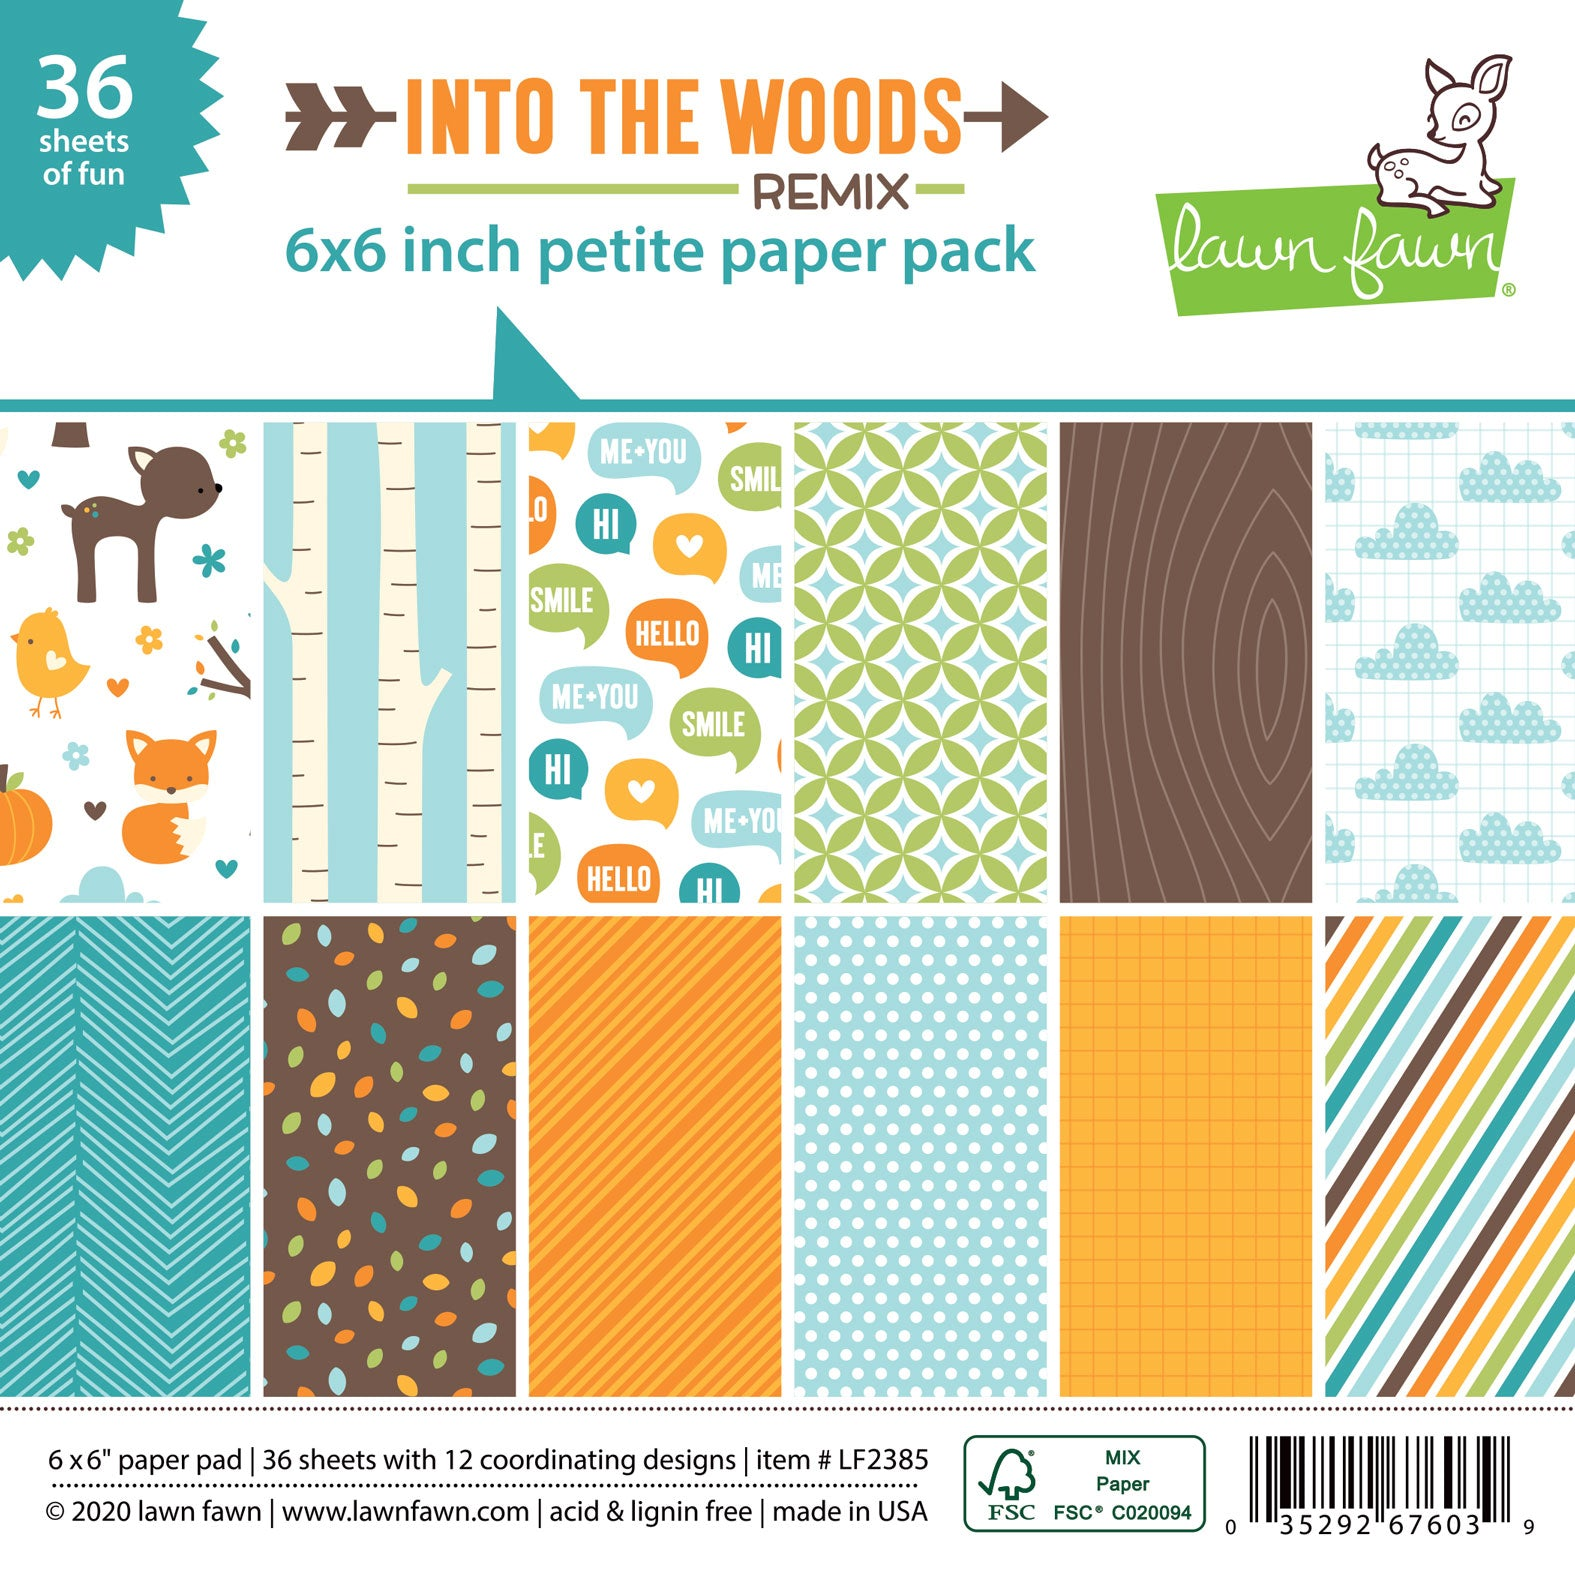 into the woods remix - petite paper pack